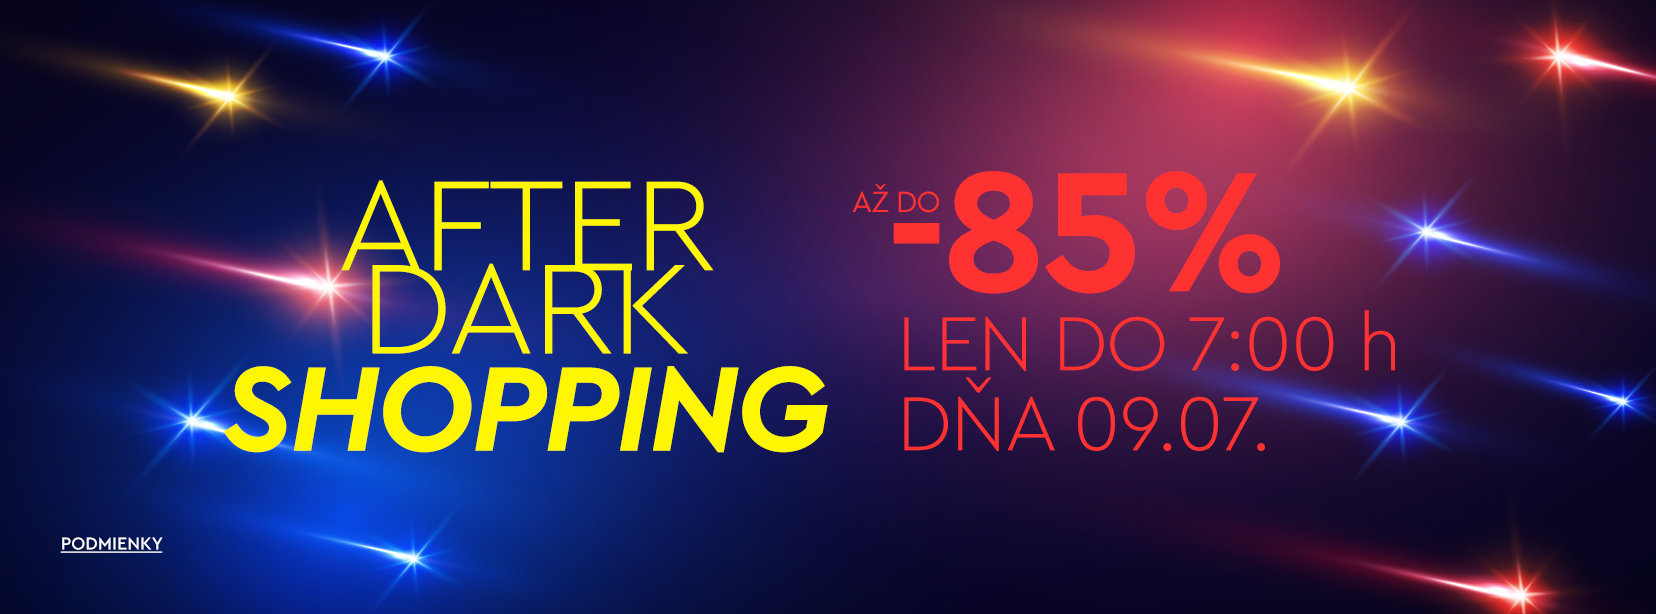 """AFTER DARK SHOPPING